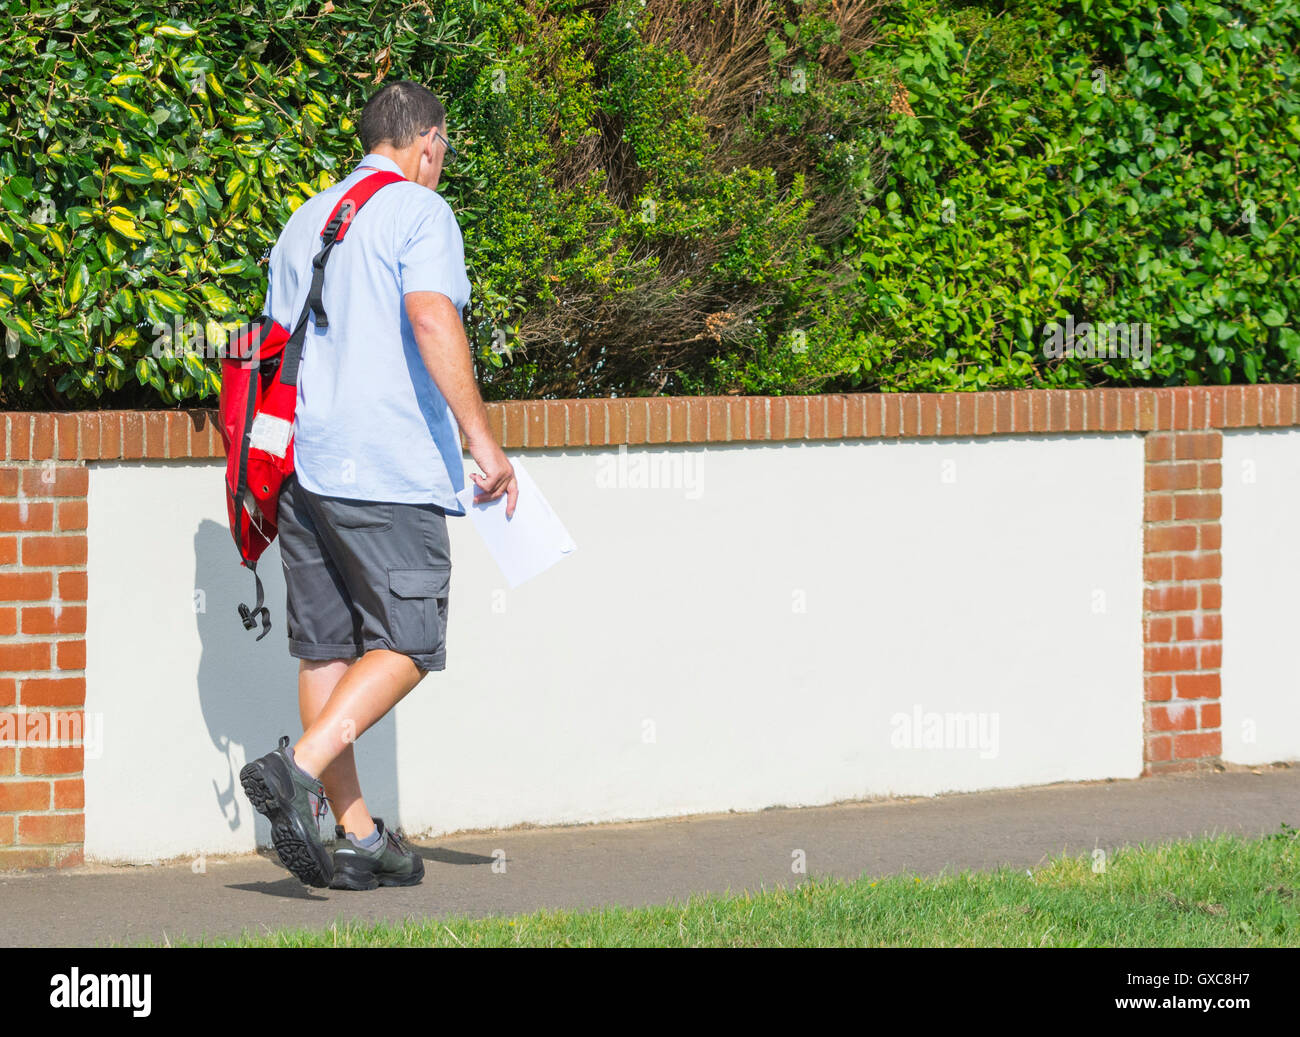 Royal Mail postman on his post delivery round in the UK. - Stock Image